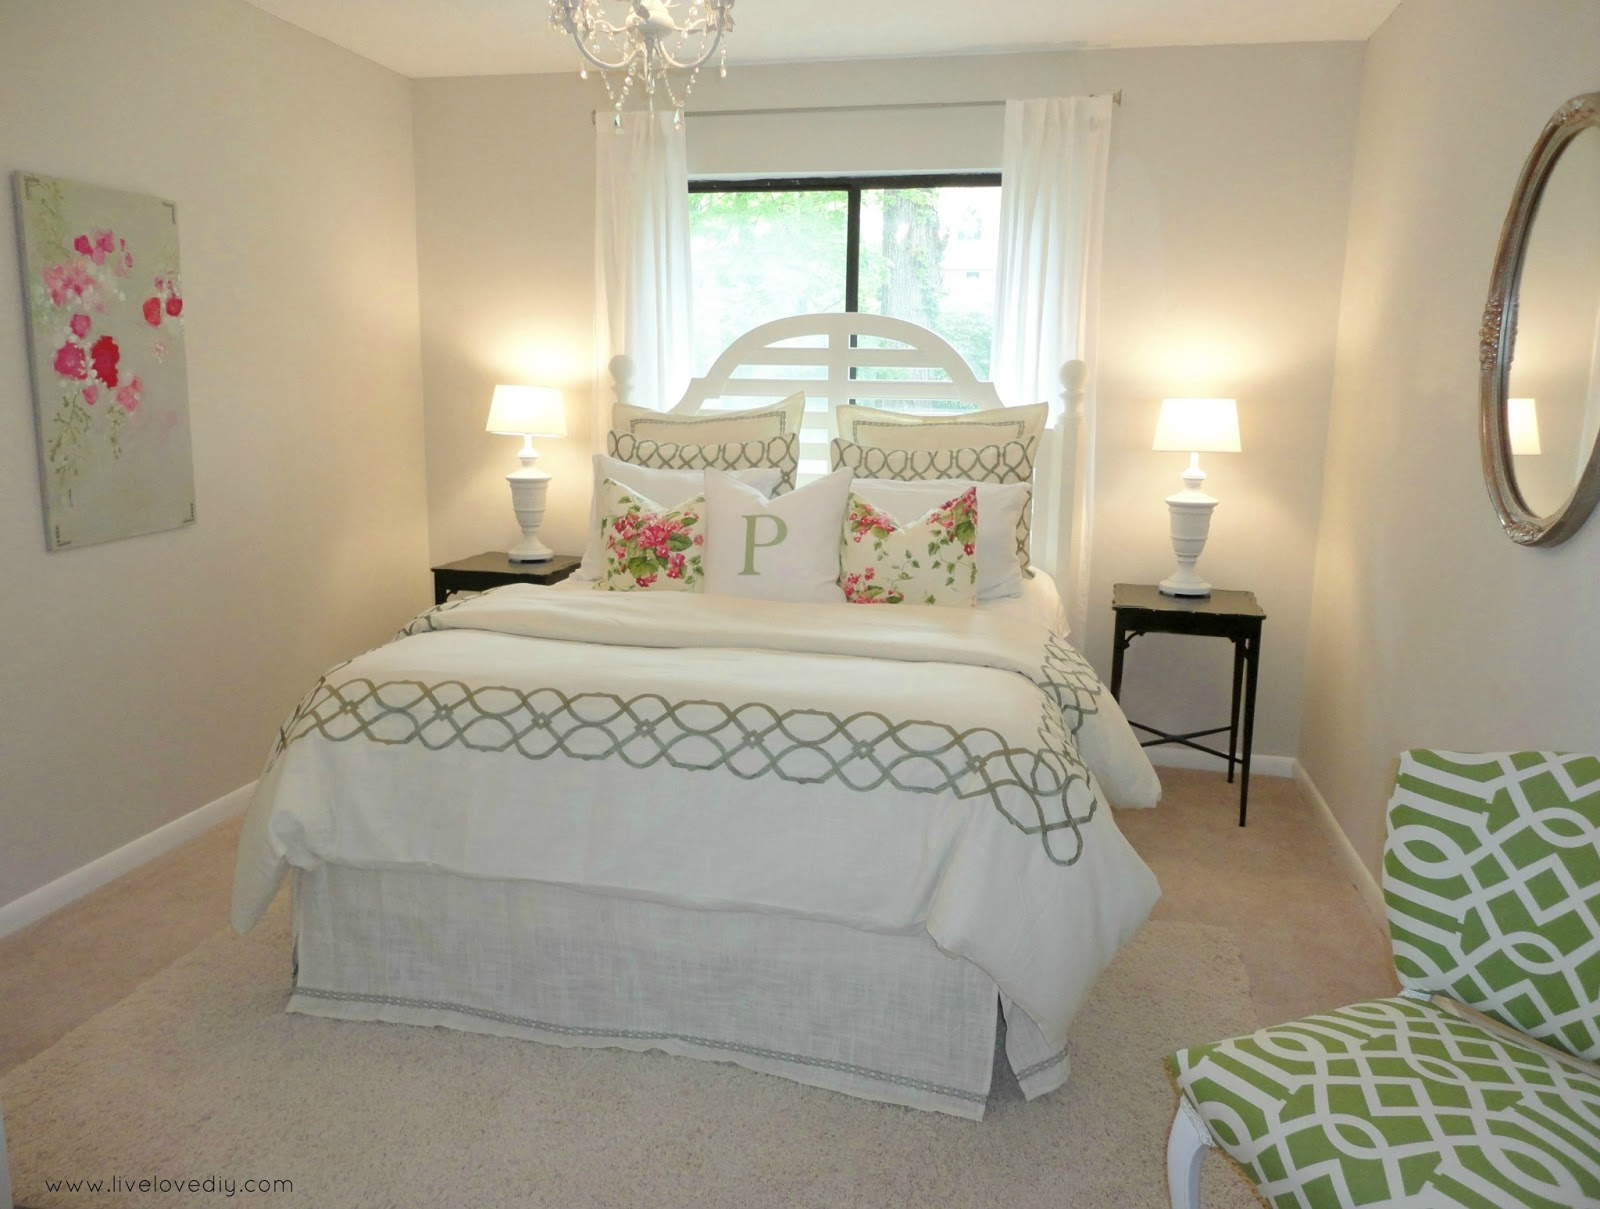 Livelovediy Decorating Bedrooms With Secondhand Finds: how to decorate a small bedroom cheap